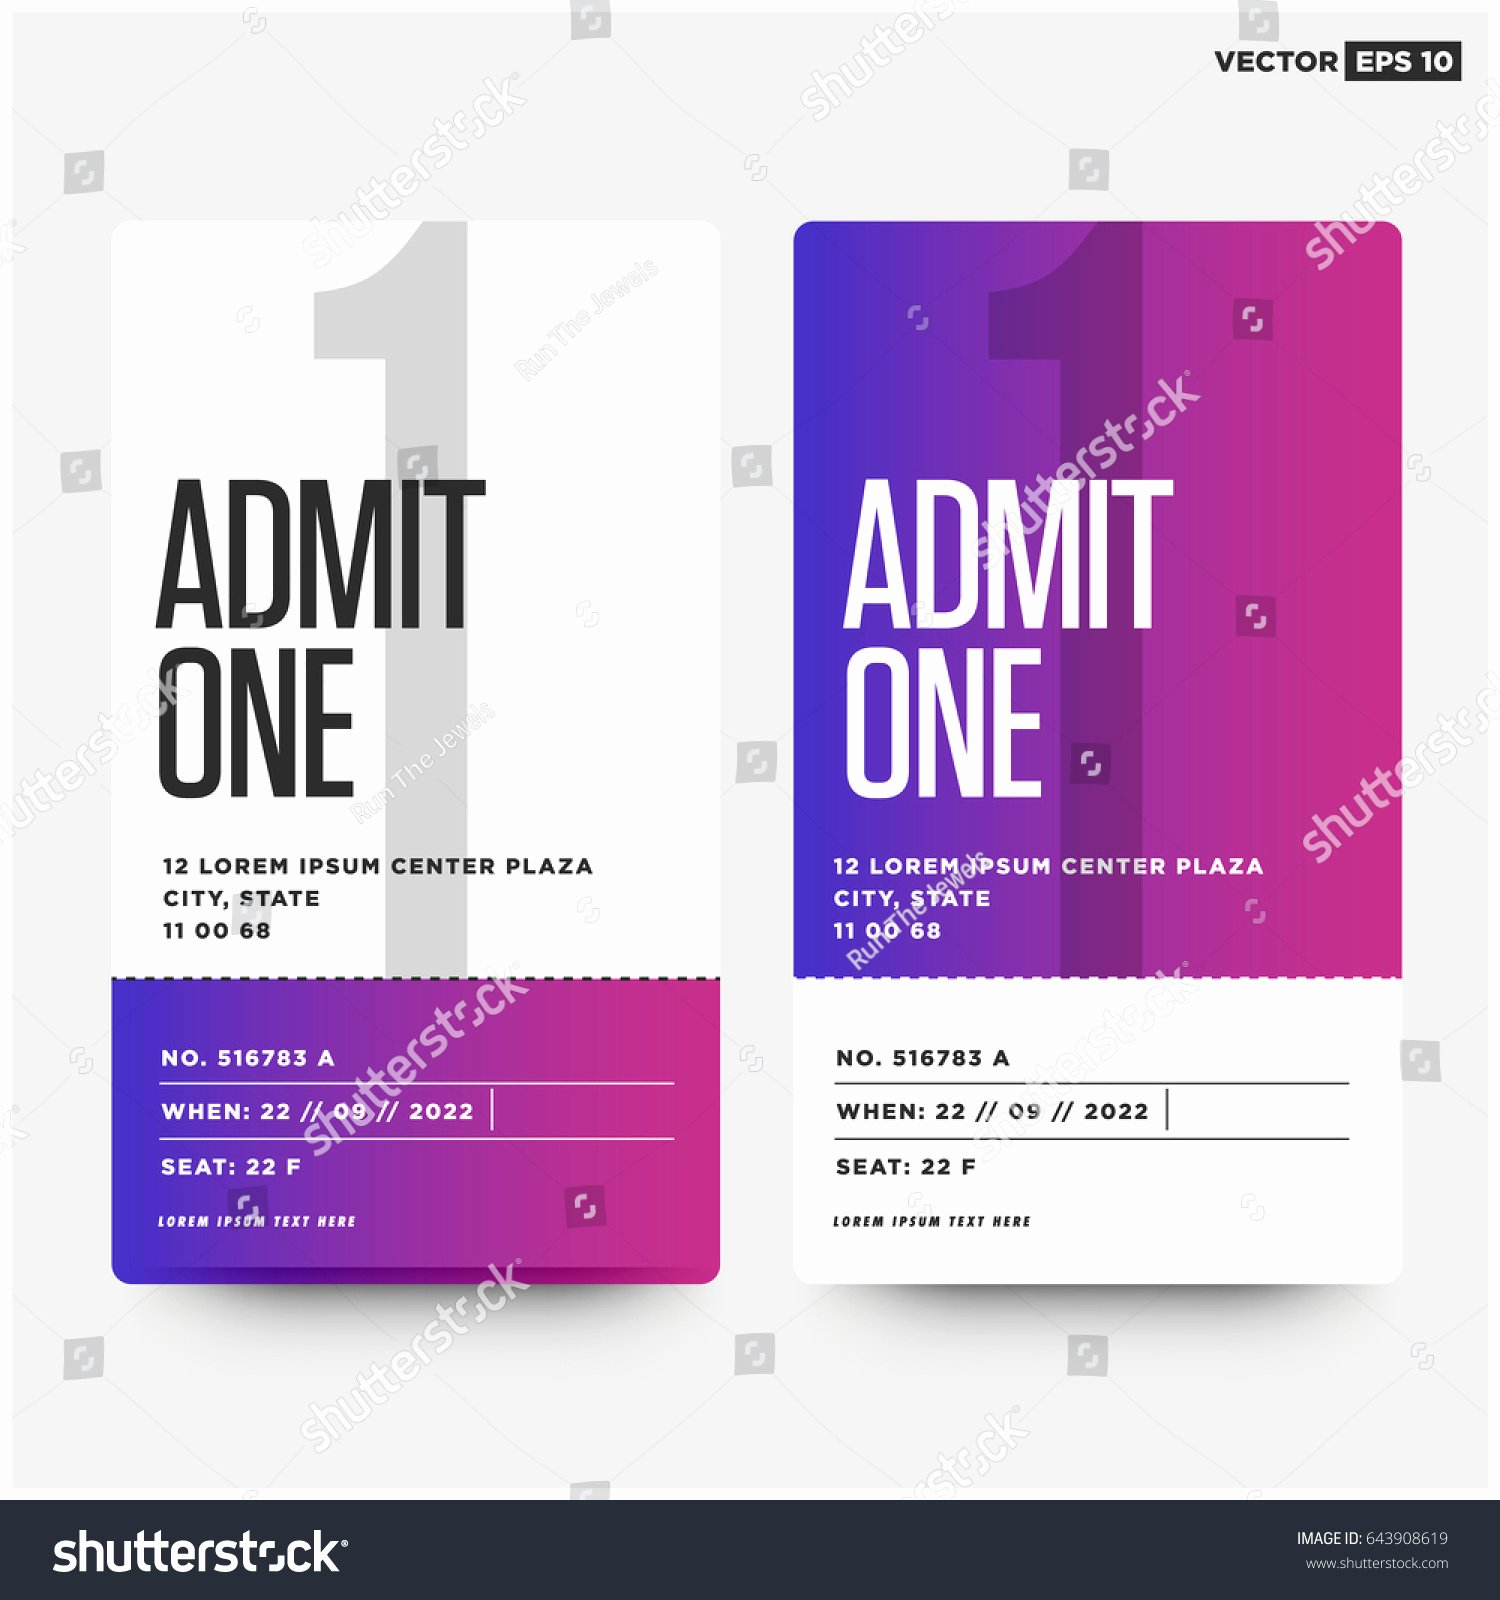 Admit One Ticket Template New Admit E Template Portablegasgrillweber